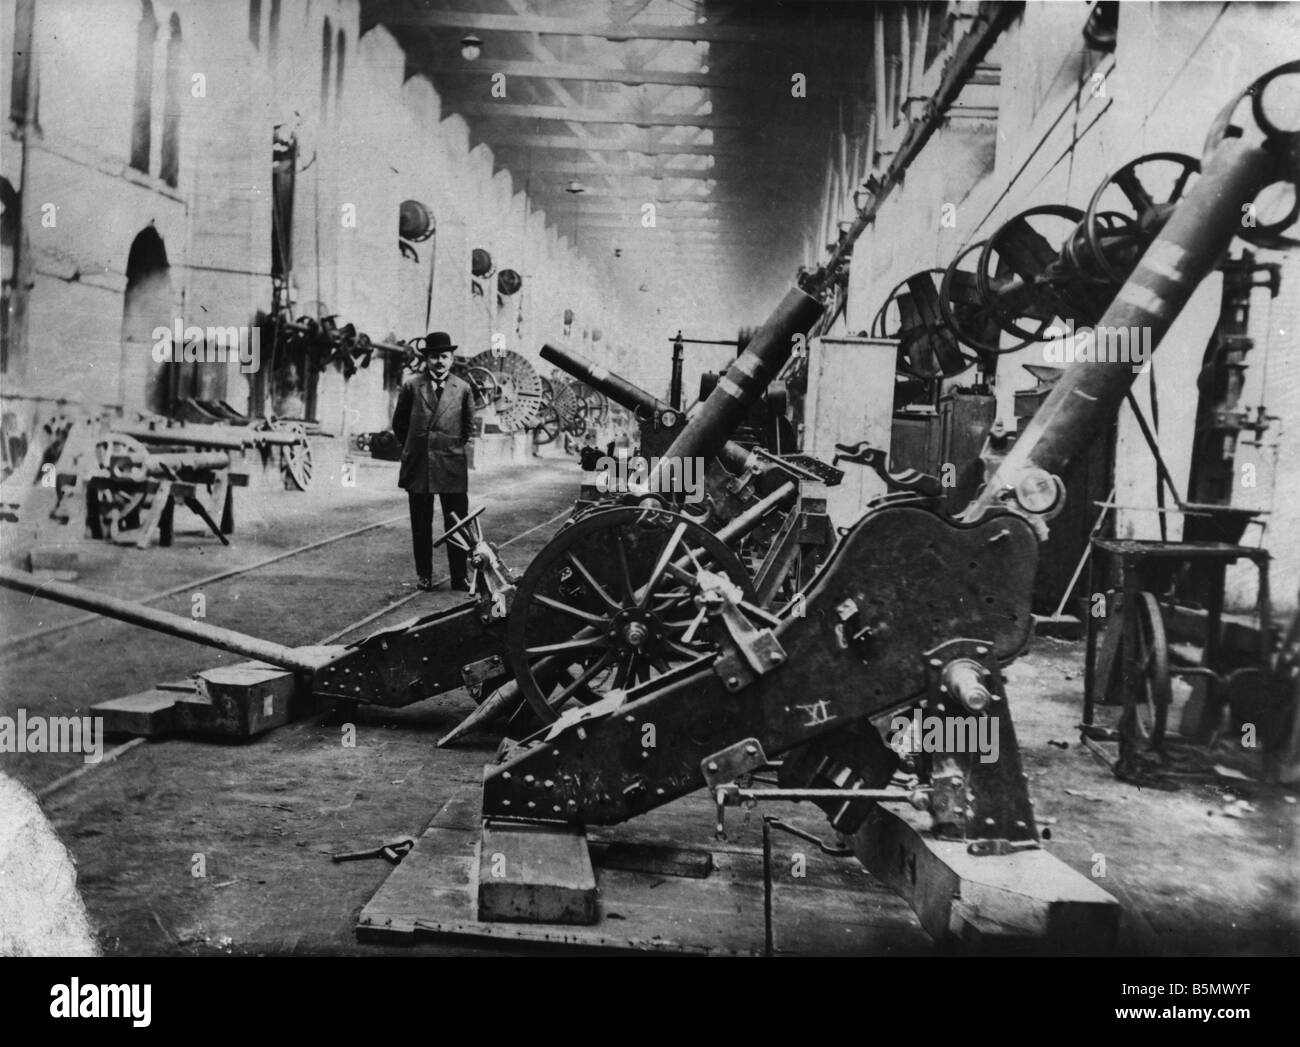 9TK 1916 0 0 A1 4 Weapon factories Turkey Autumn 1916 History of Turkey World War 1 Weapon cannon and ammunition - Stock Image